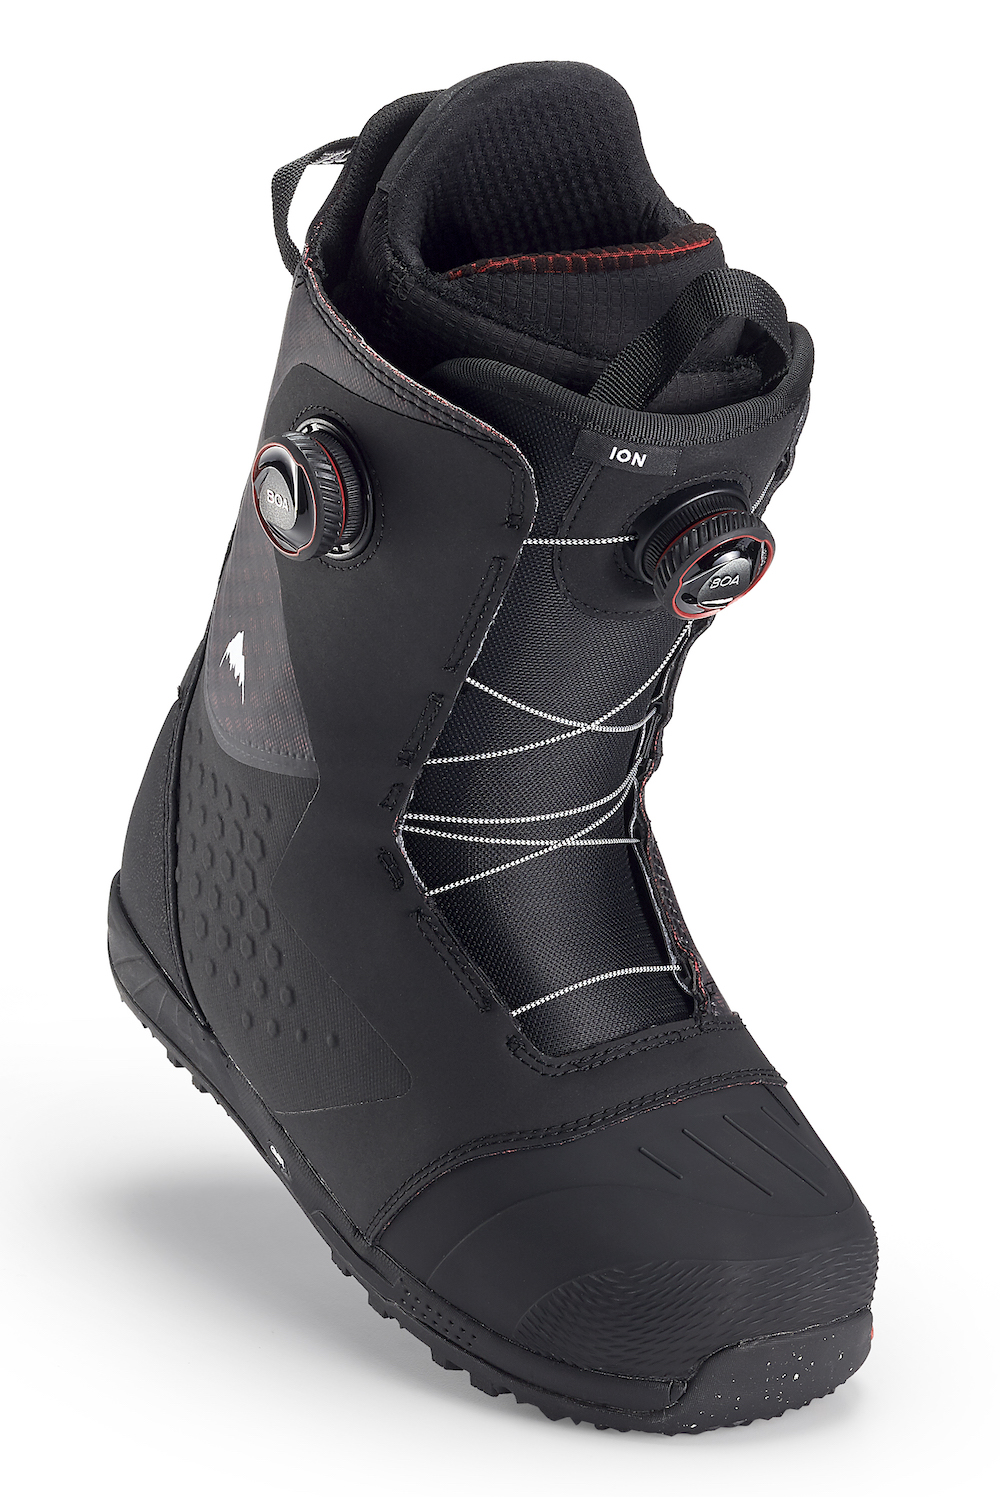 Boa has unveiled a new snowboard-specific closure system that relies on textile lacing for its most durable design yet.